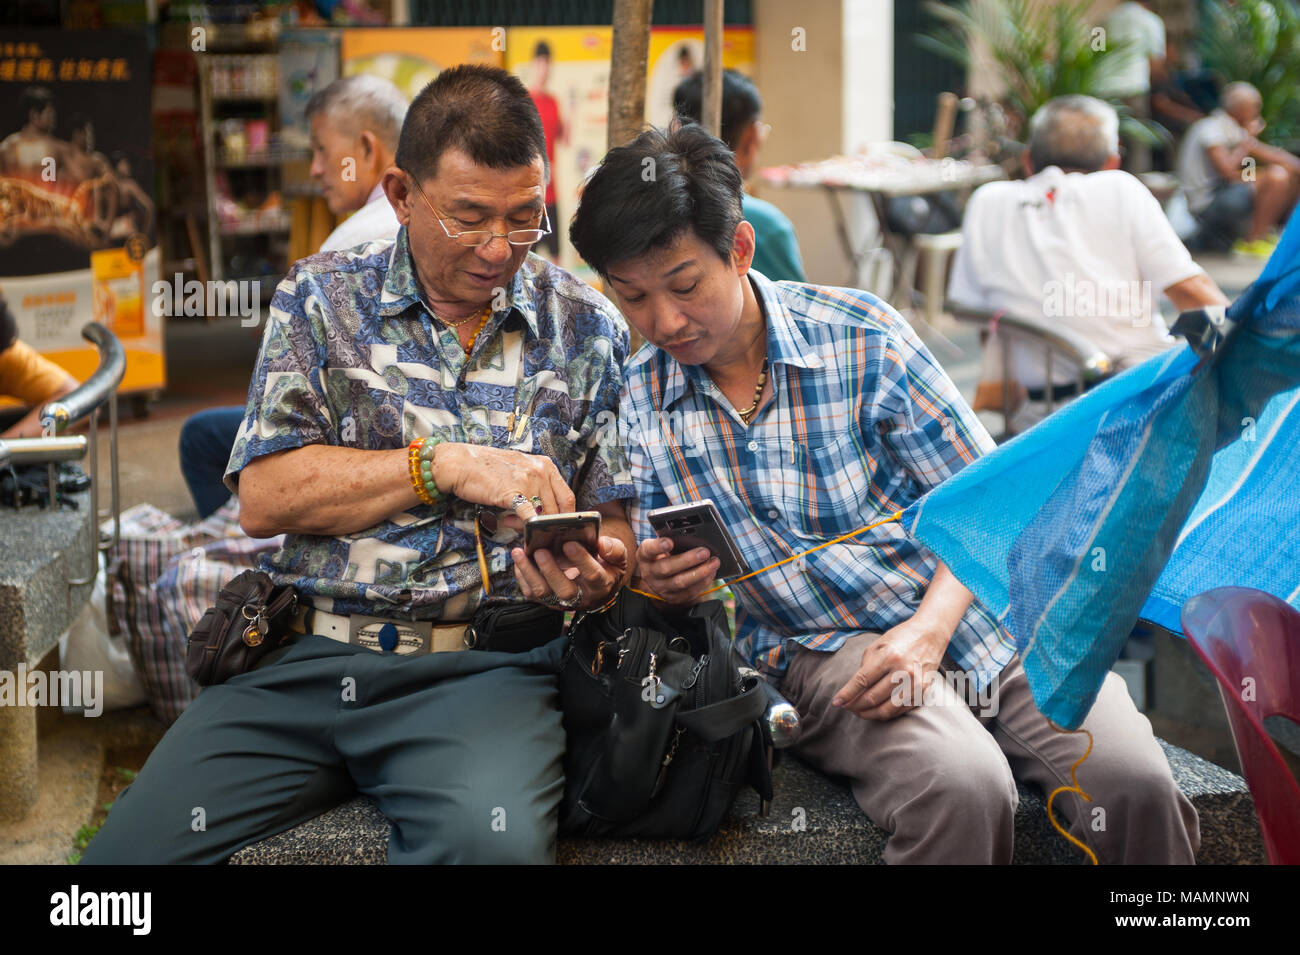 31.03.2018, Singapore, Republic of Singapore, Asia - Two men are occupied with their smartphones in Singapore's Chinatown district. - Stock Image